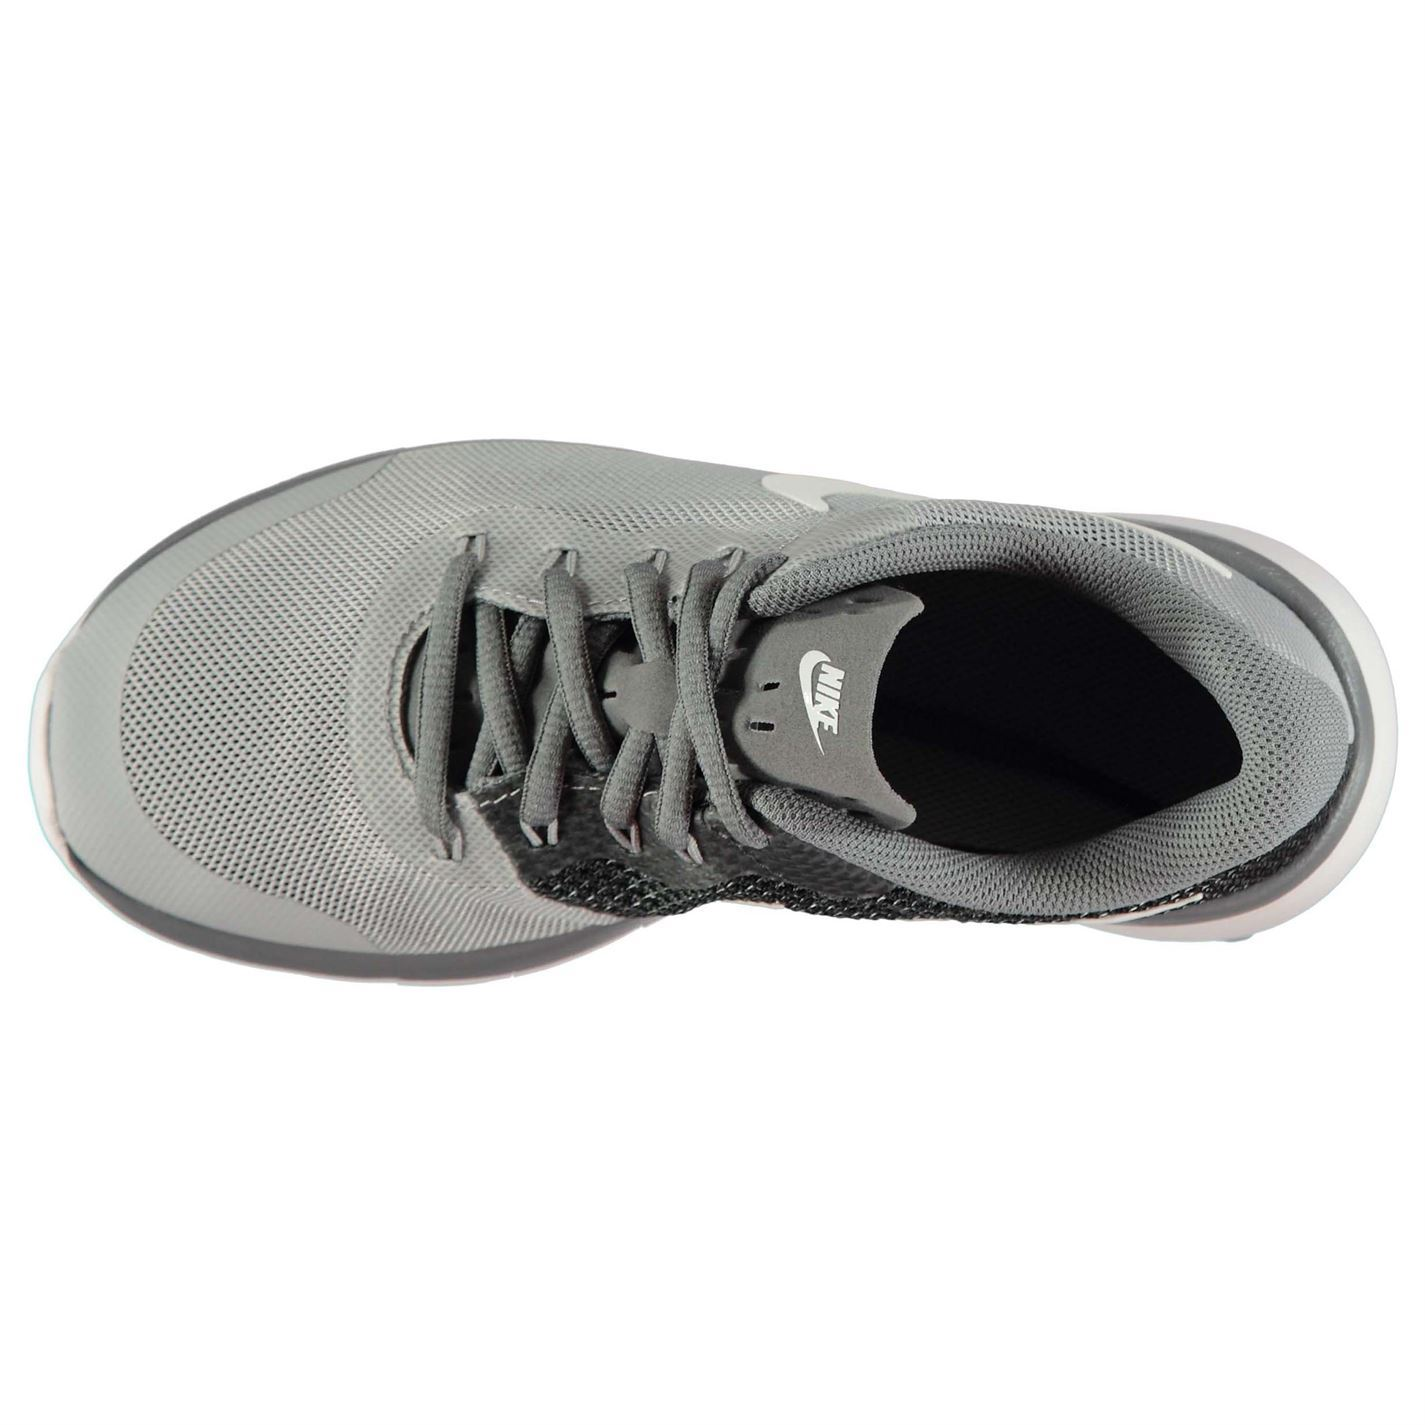 wholesale dealer 35567 8a2b6 ... Nike Tanjun Racer Trainers Child Boys Grey White Shoes Footwear